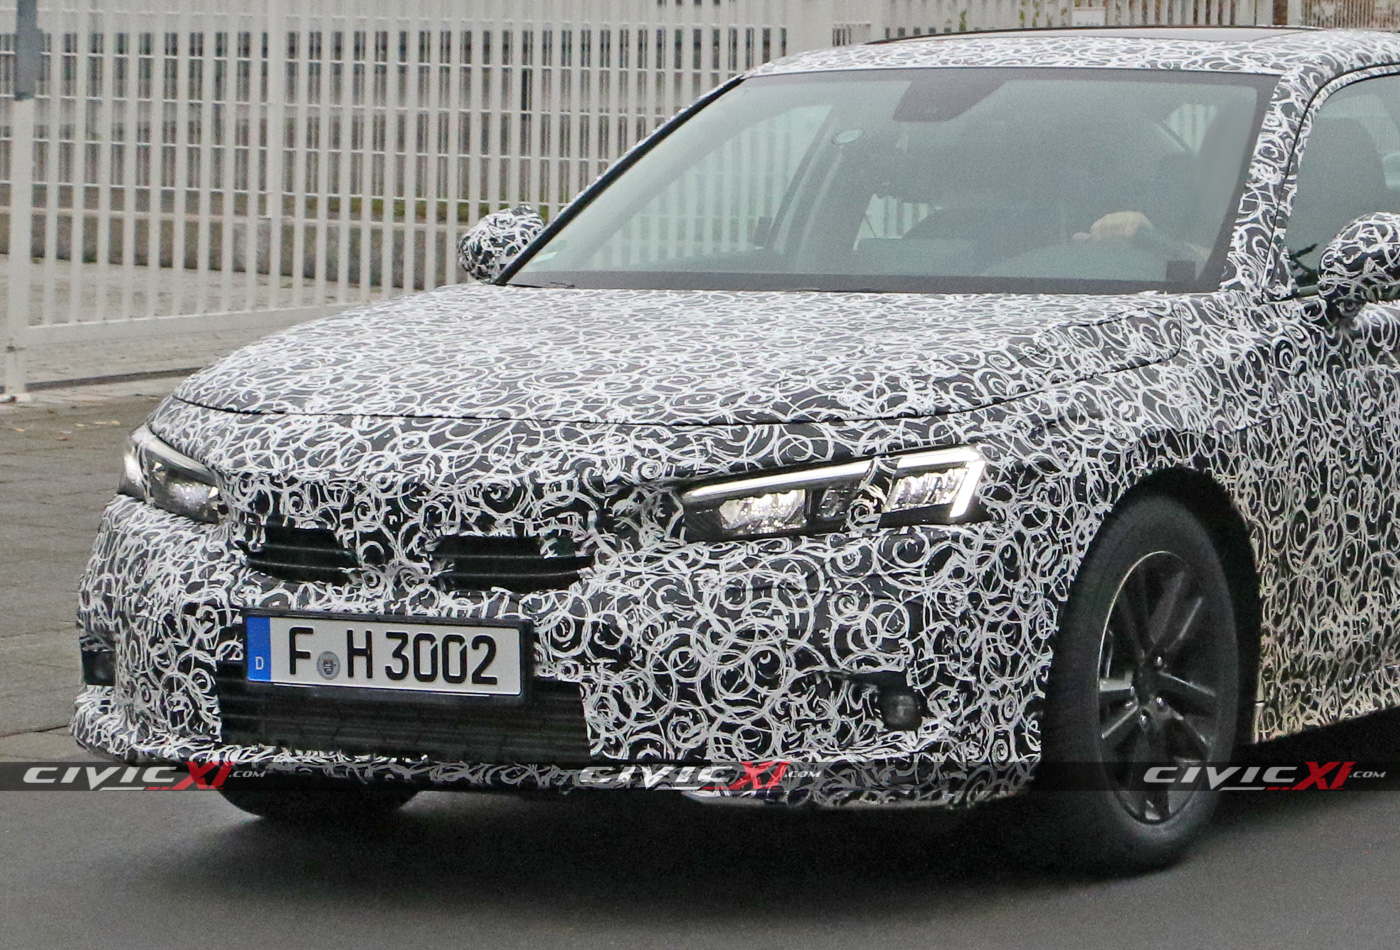 2022-Civic-Sedan-11th-Generation-Spied-Testing-Germany-7.jpg